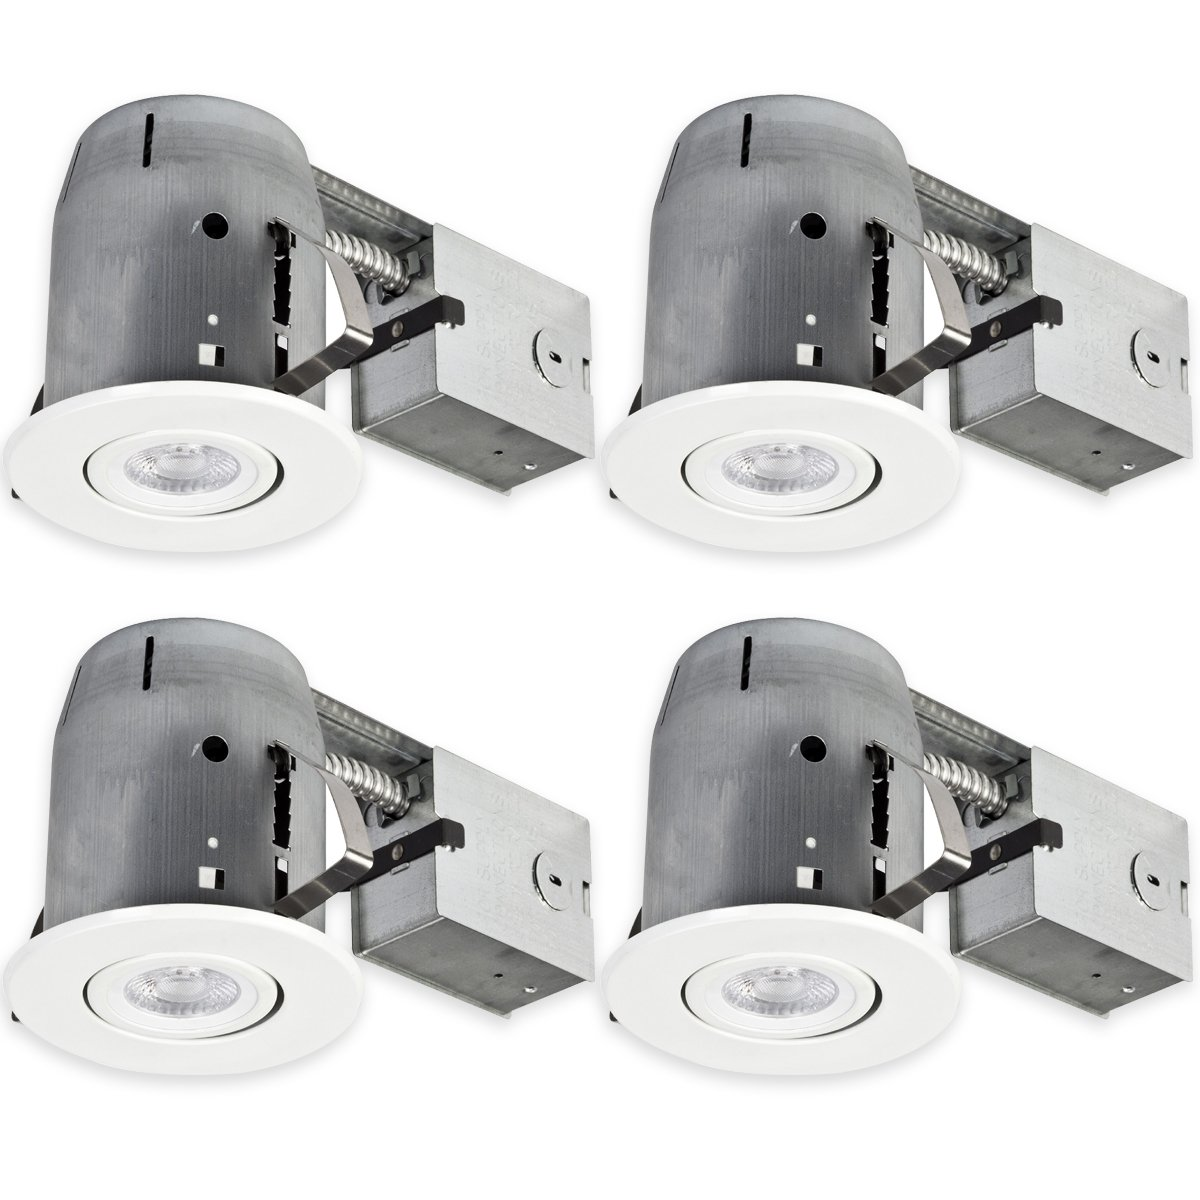 "Globe Electric 90957 LED IC Rated Swivel Spotlight Round Recessed Lighting Kit Dimmable Downlight, LED Bulbs Included (4 Pack), 5"", White"